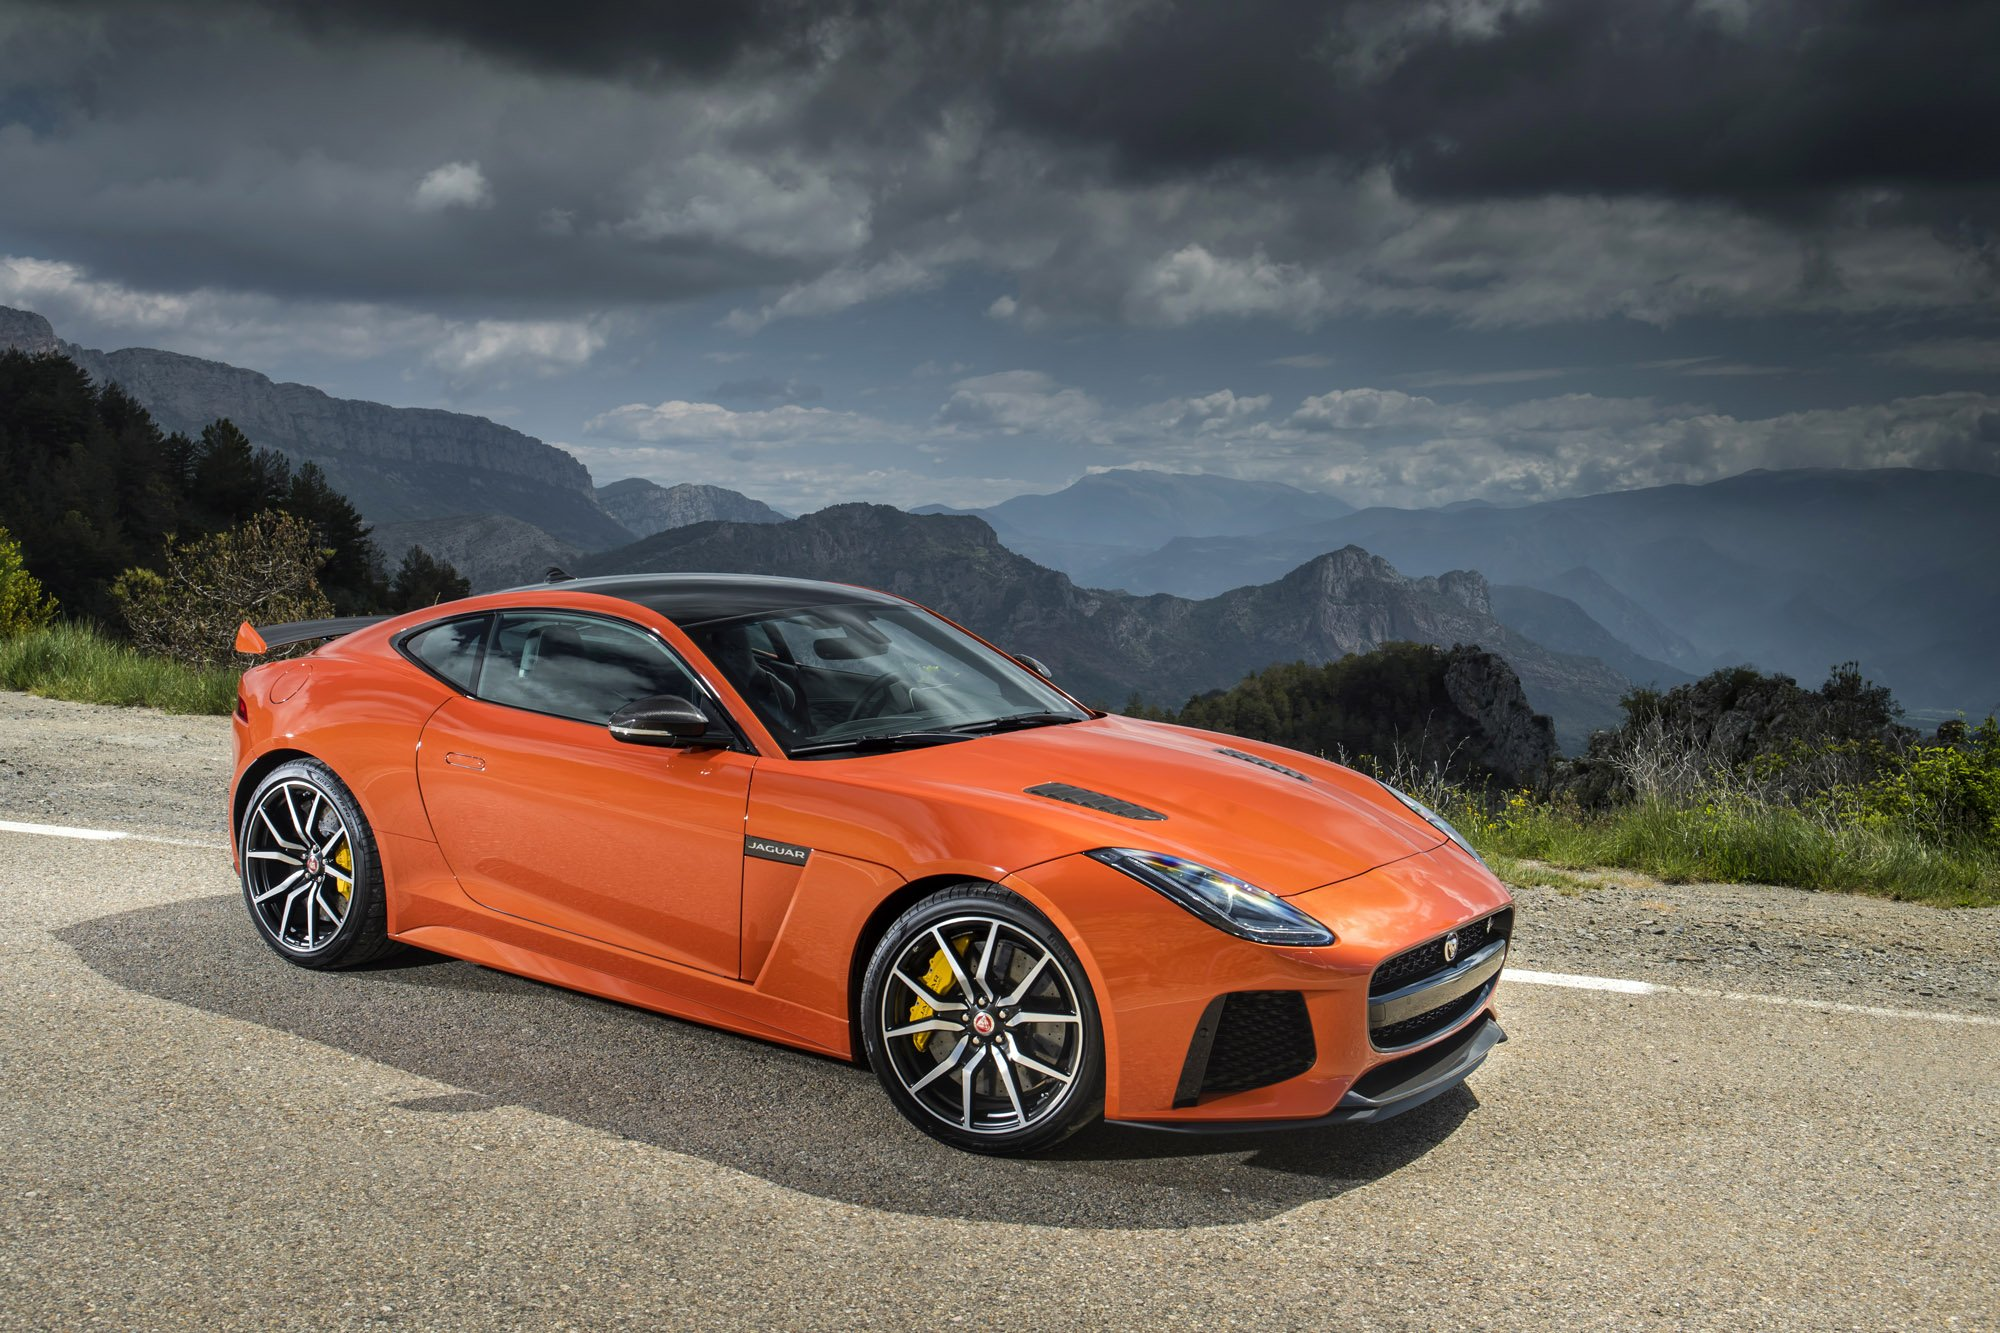 Jaguar F Type Convertible >> 2017 Jaguar F-Type SVR Review | CarAdvice